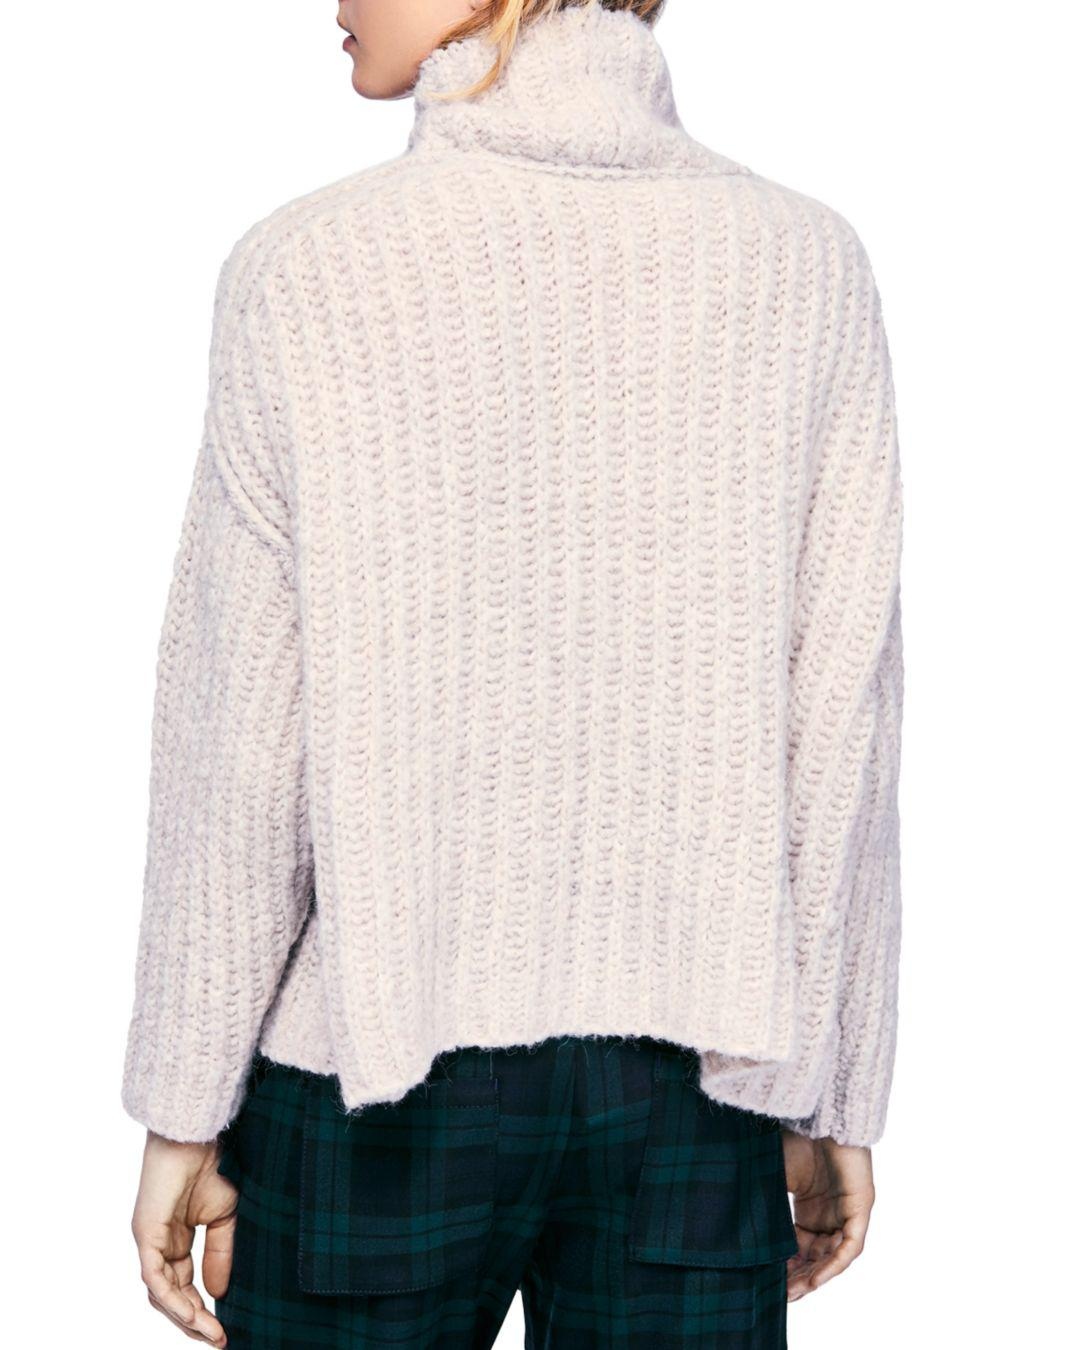 767c608399a Free People Boxy Turtleneck Sweater in Pink - Lyst